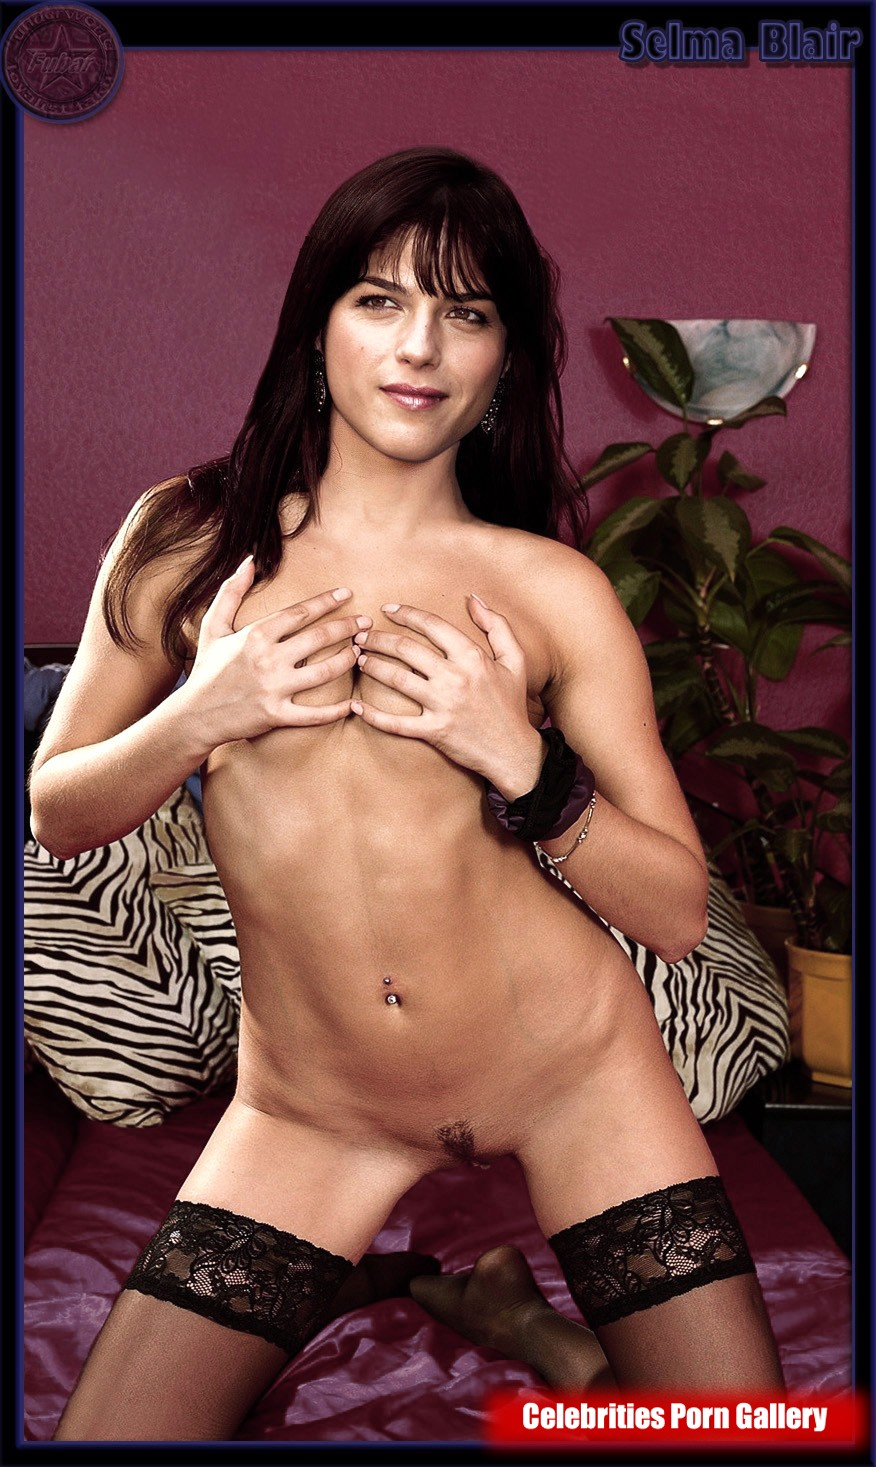 Was celebrity nudes selma blair here not